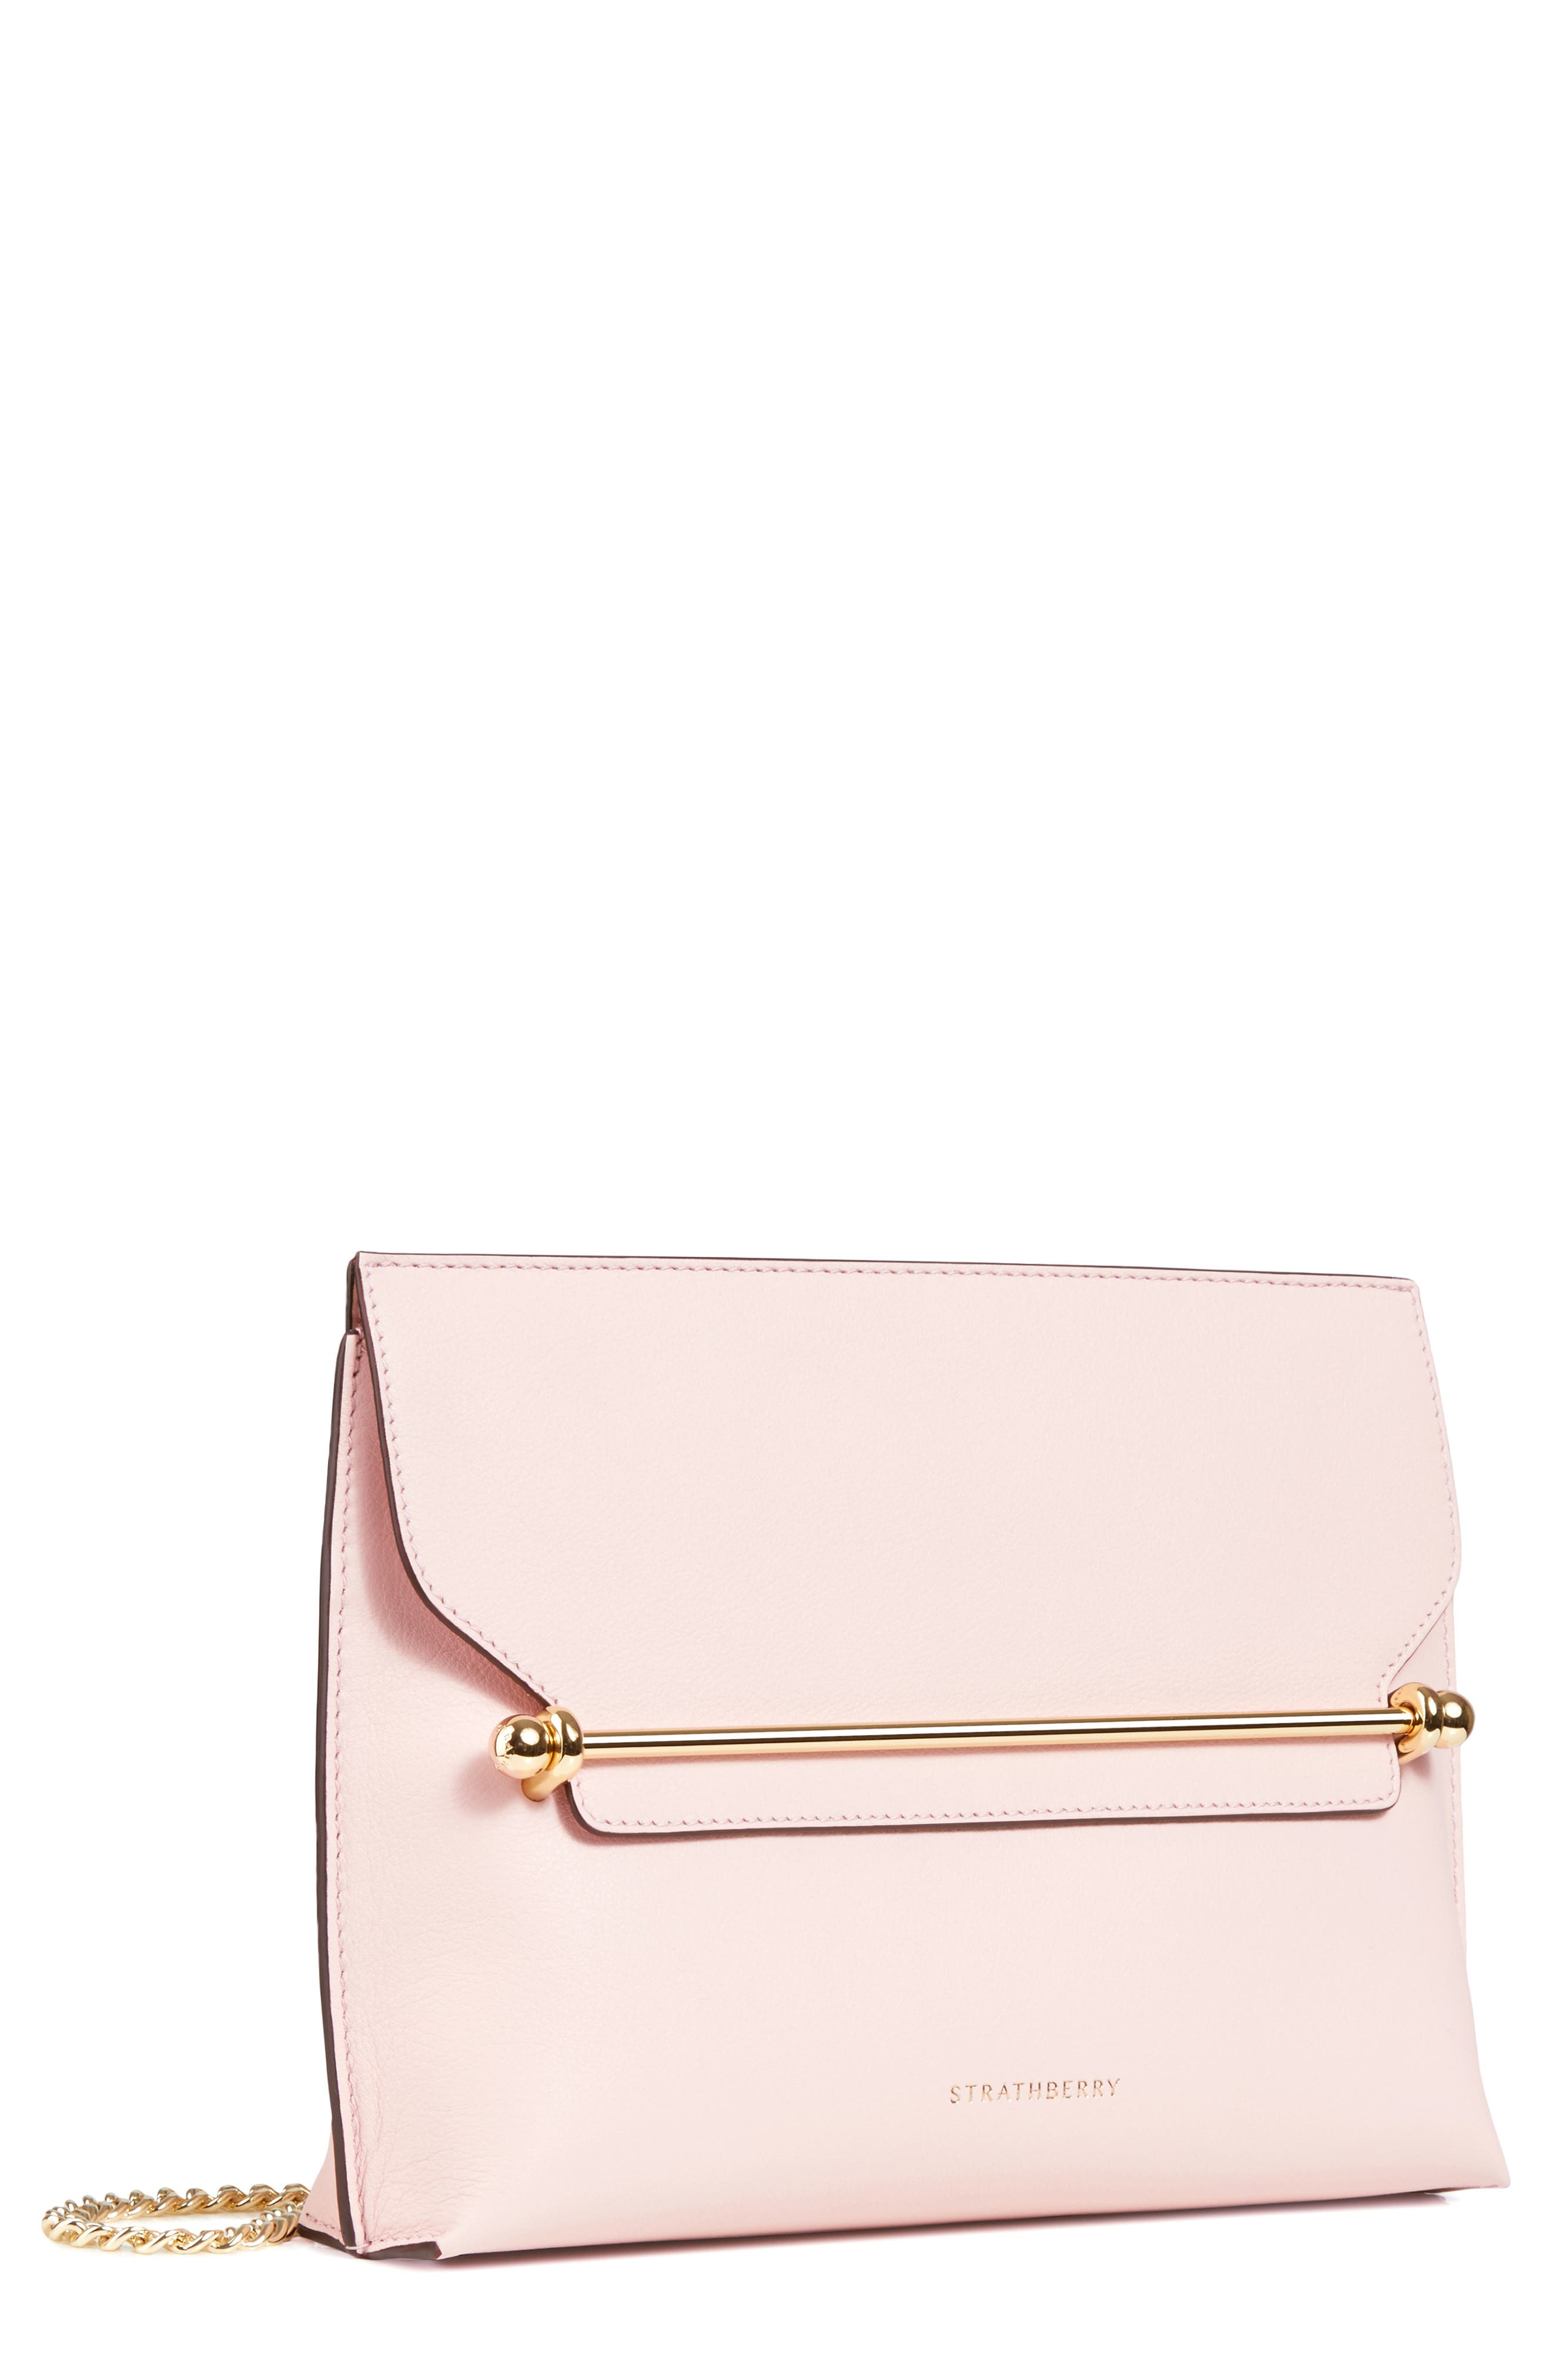 East/West Stylish Leather Clutch,                             Main thumbnail 1, color,                             BABY PINK